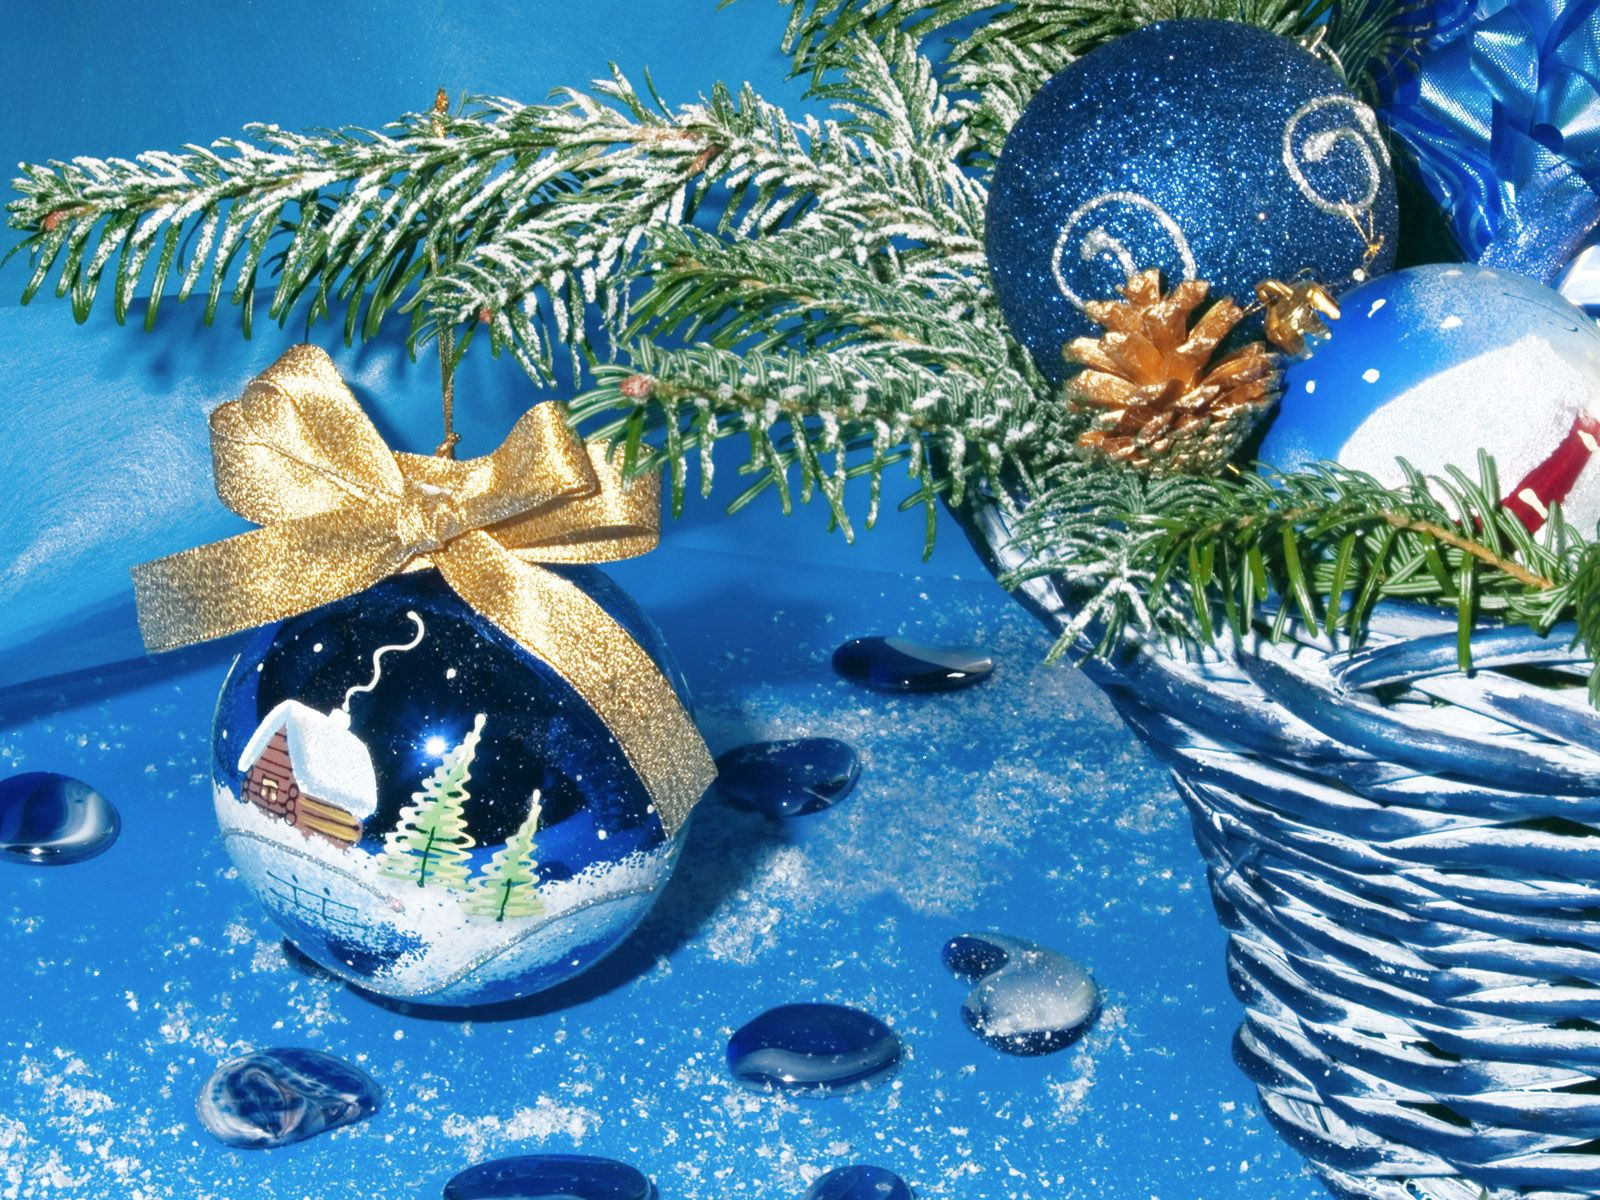 148188 download wallpaper Holidays, Christmas, New Year, Balls, Basket, Pictures screensavers and pictures for free